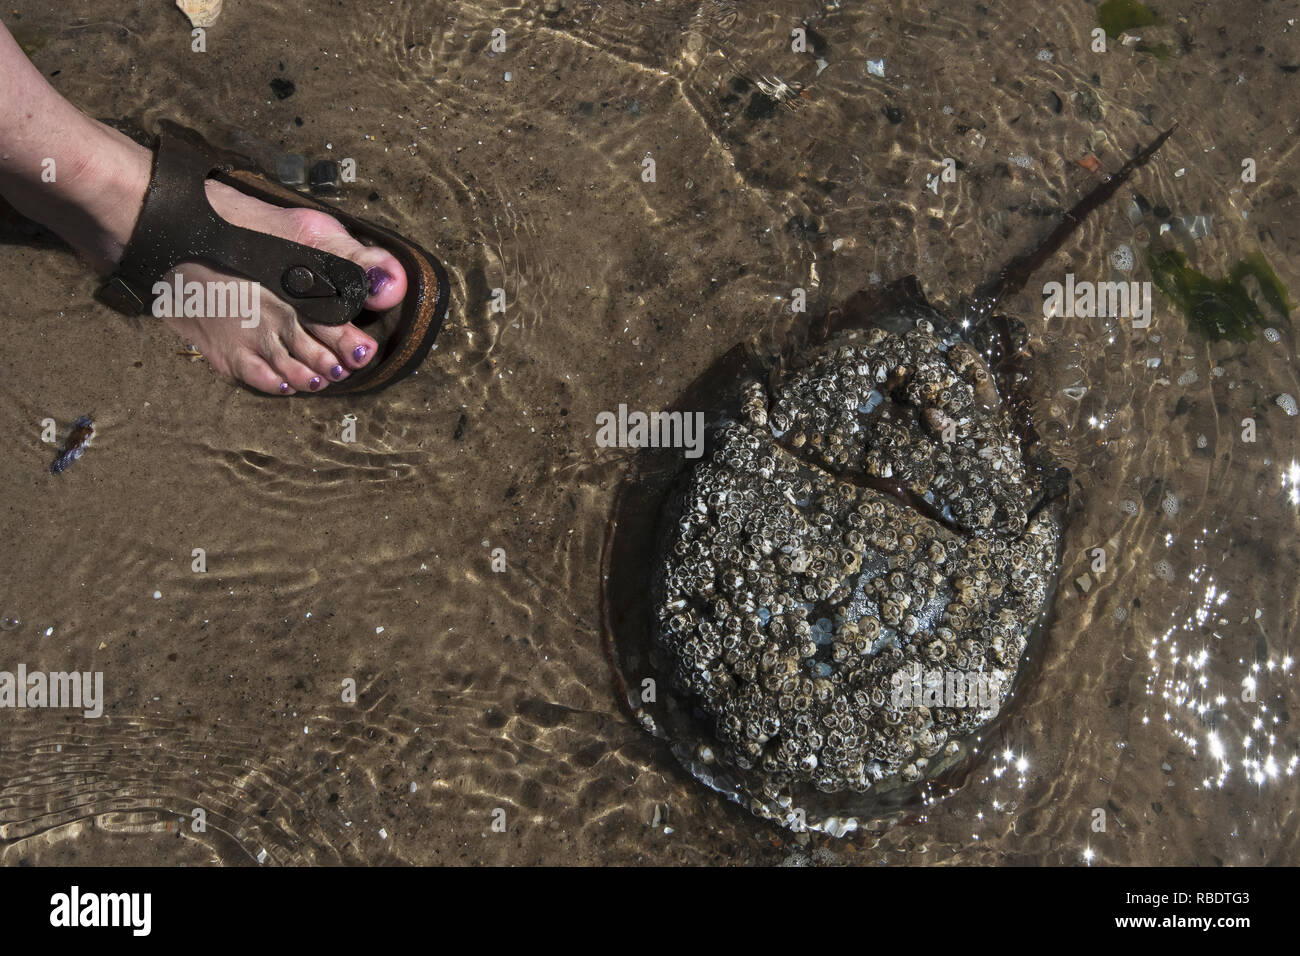 Child's foot and Atlantic horseshoe crab in shallow water in late may - Stock Image